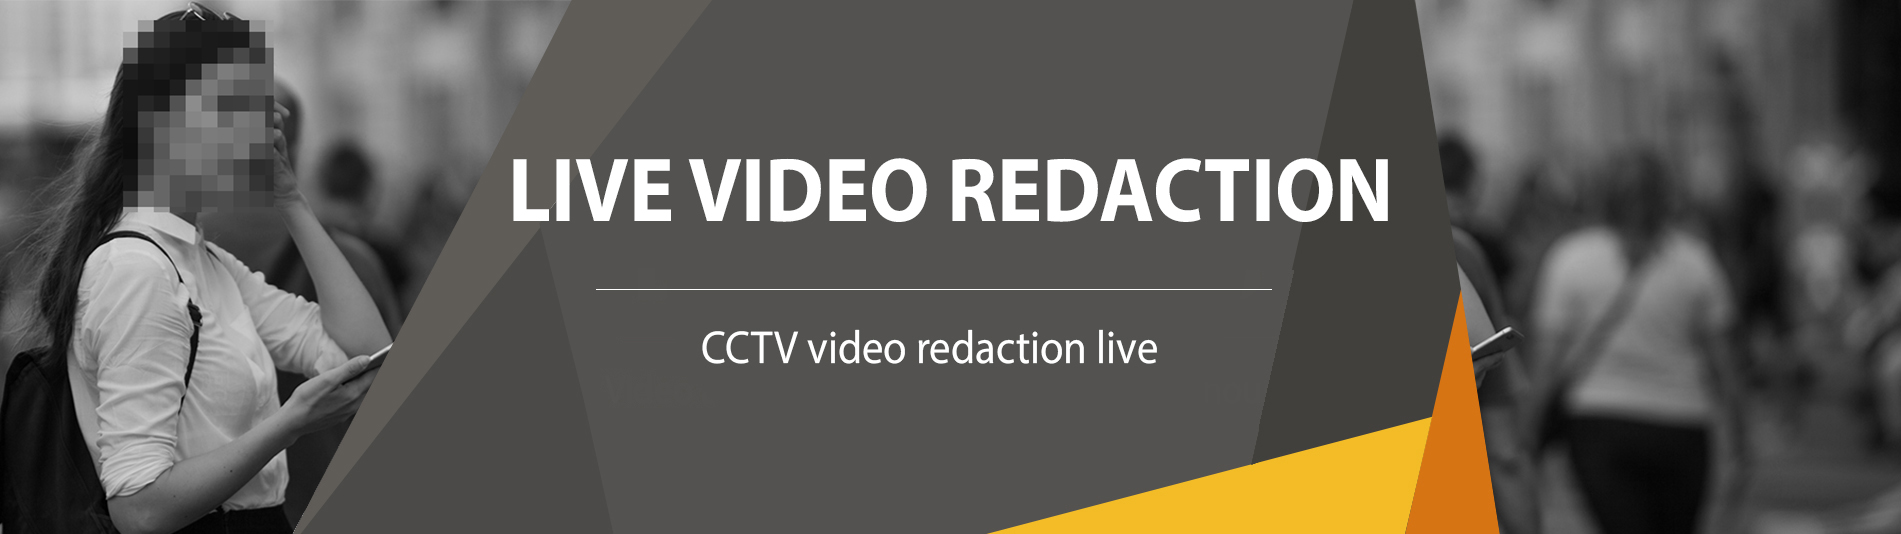 Live Video Redaction